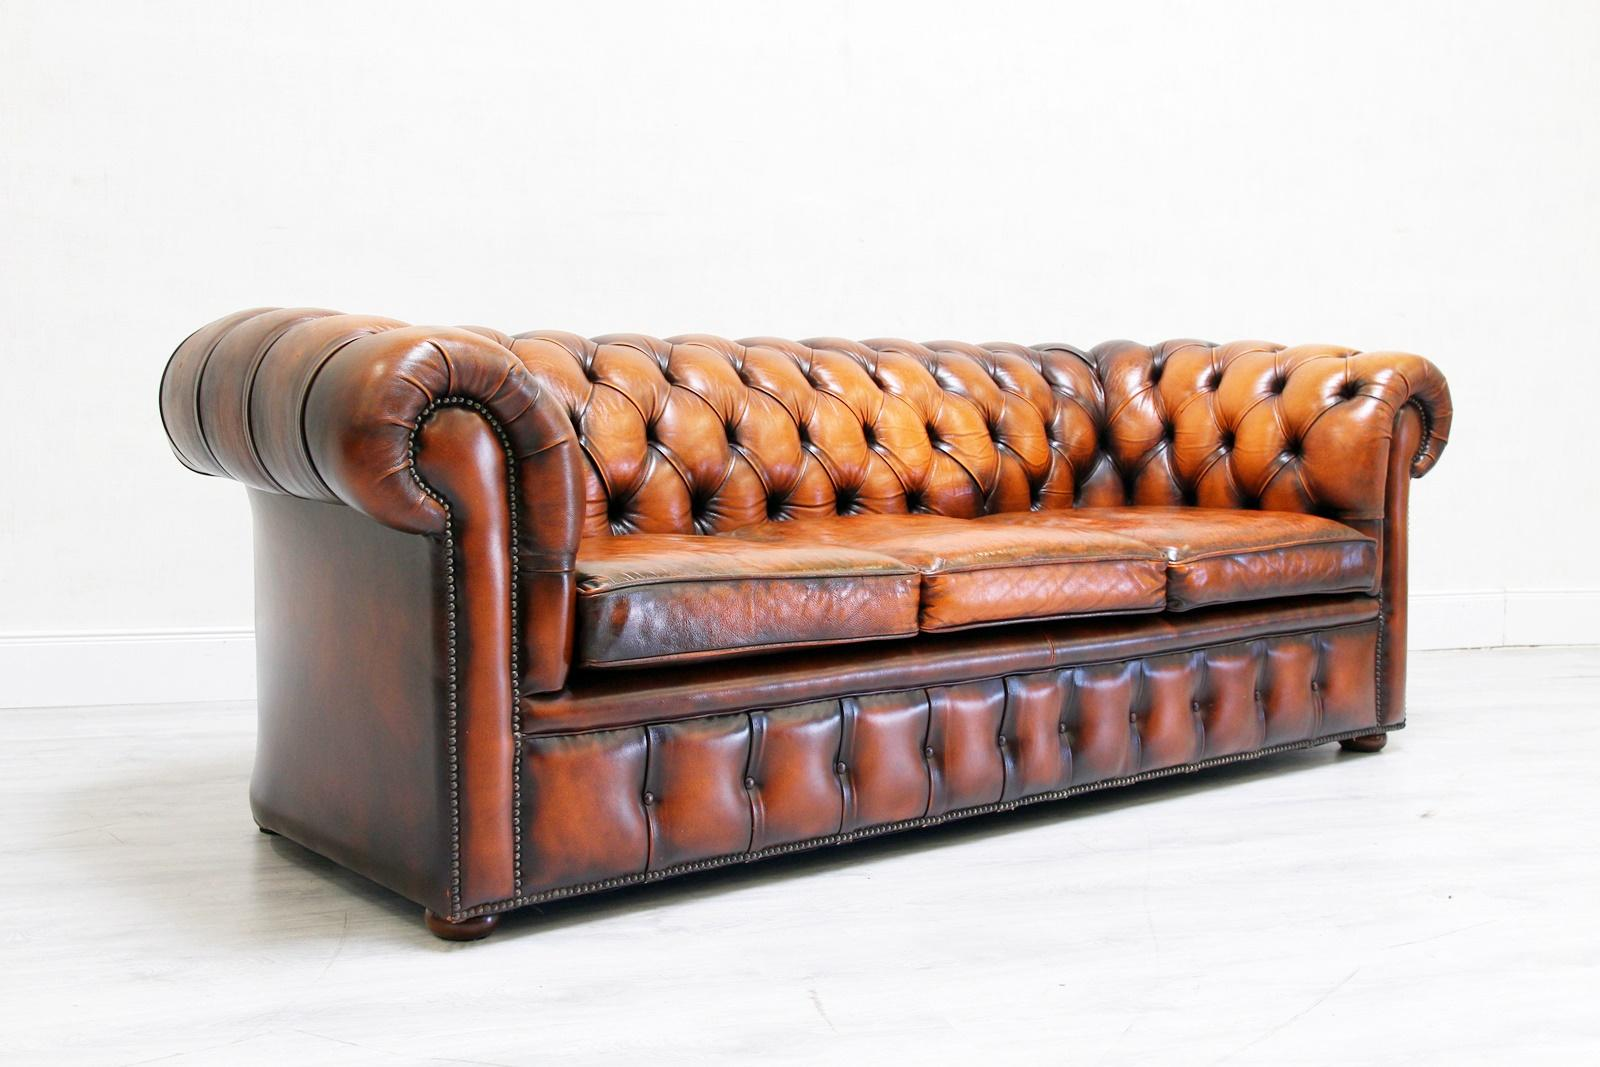 Bettsofa Antik Chesterfield Sofa Leder Antik Vintage Couch English Chippendale